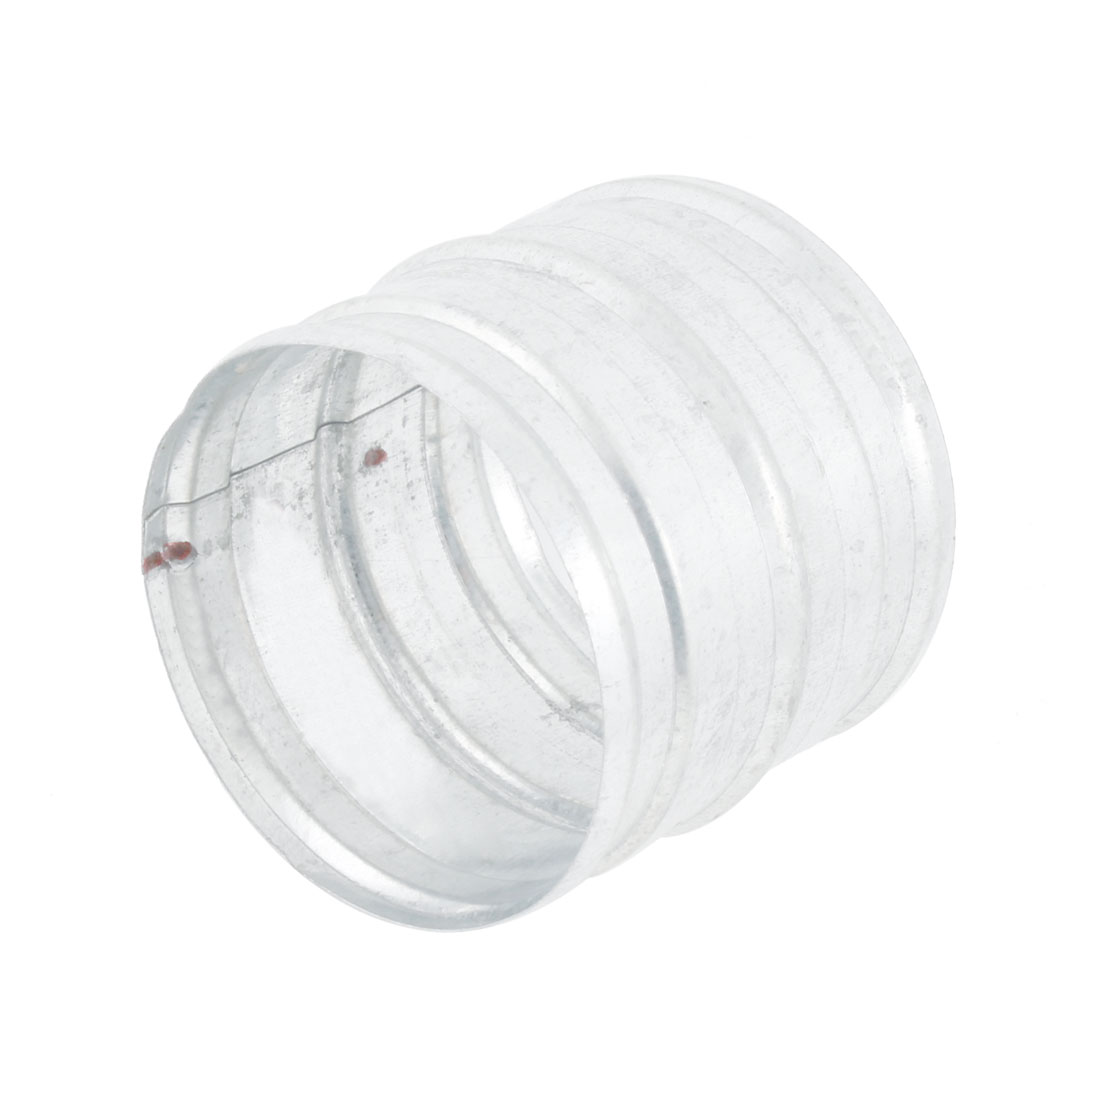 100mm Outer Dia 2 Way Straight Air Vent Outlet Joint Adapter Connector for Ventilation Ducting